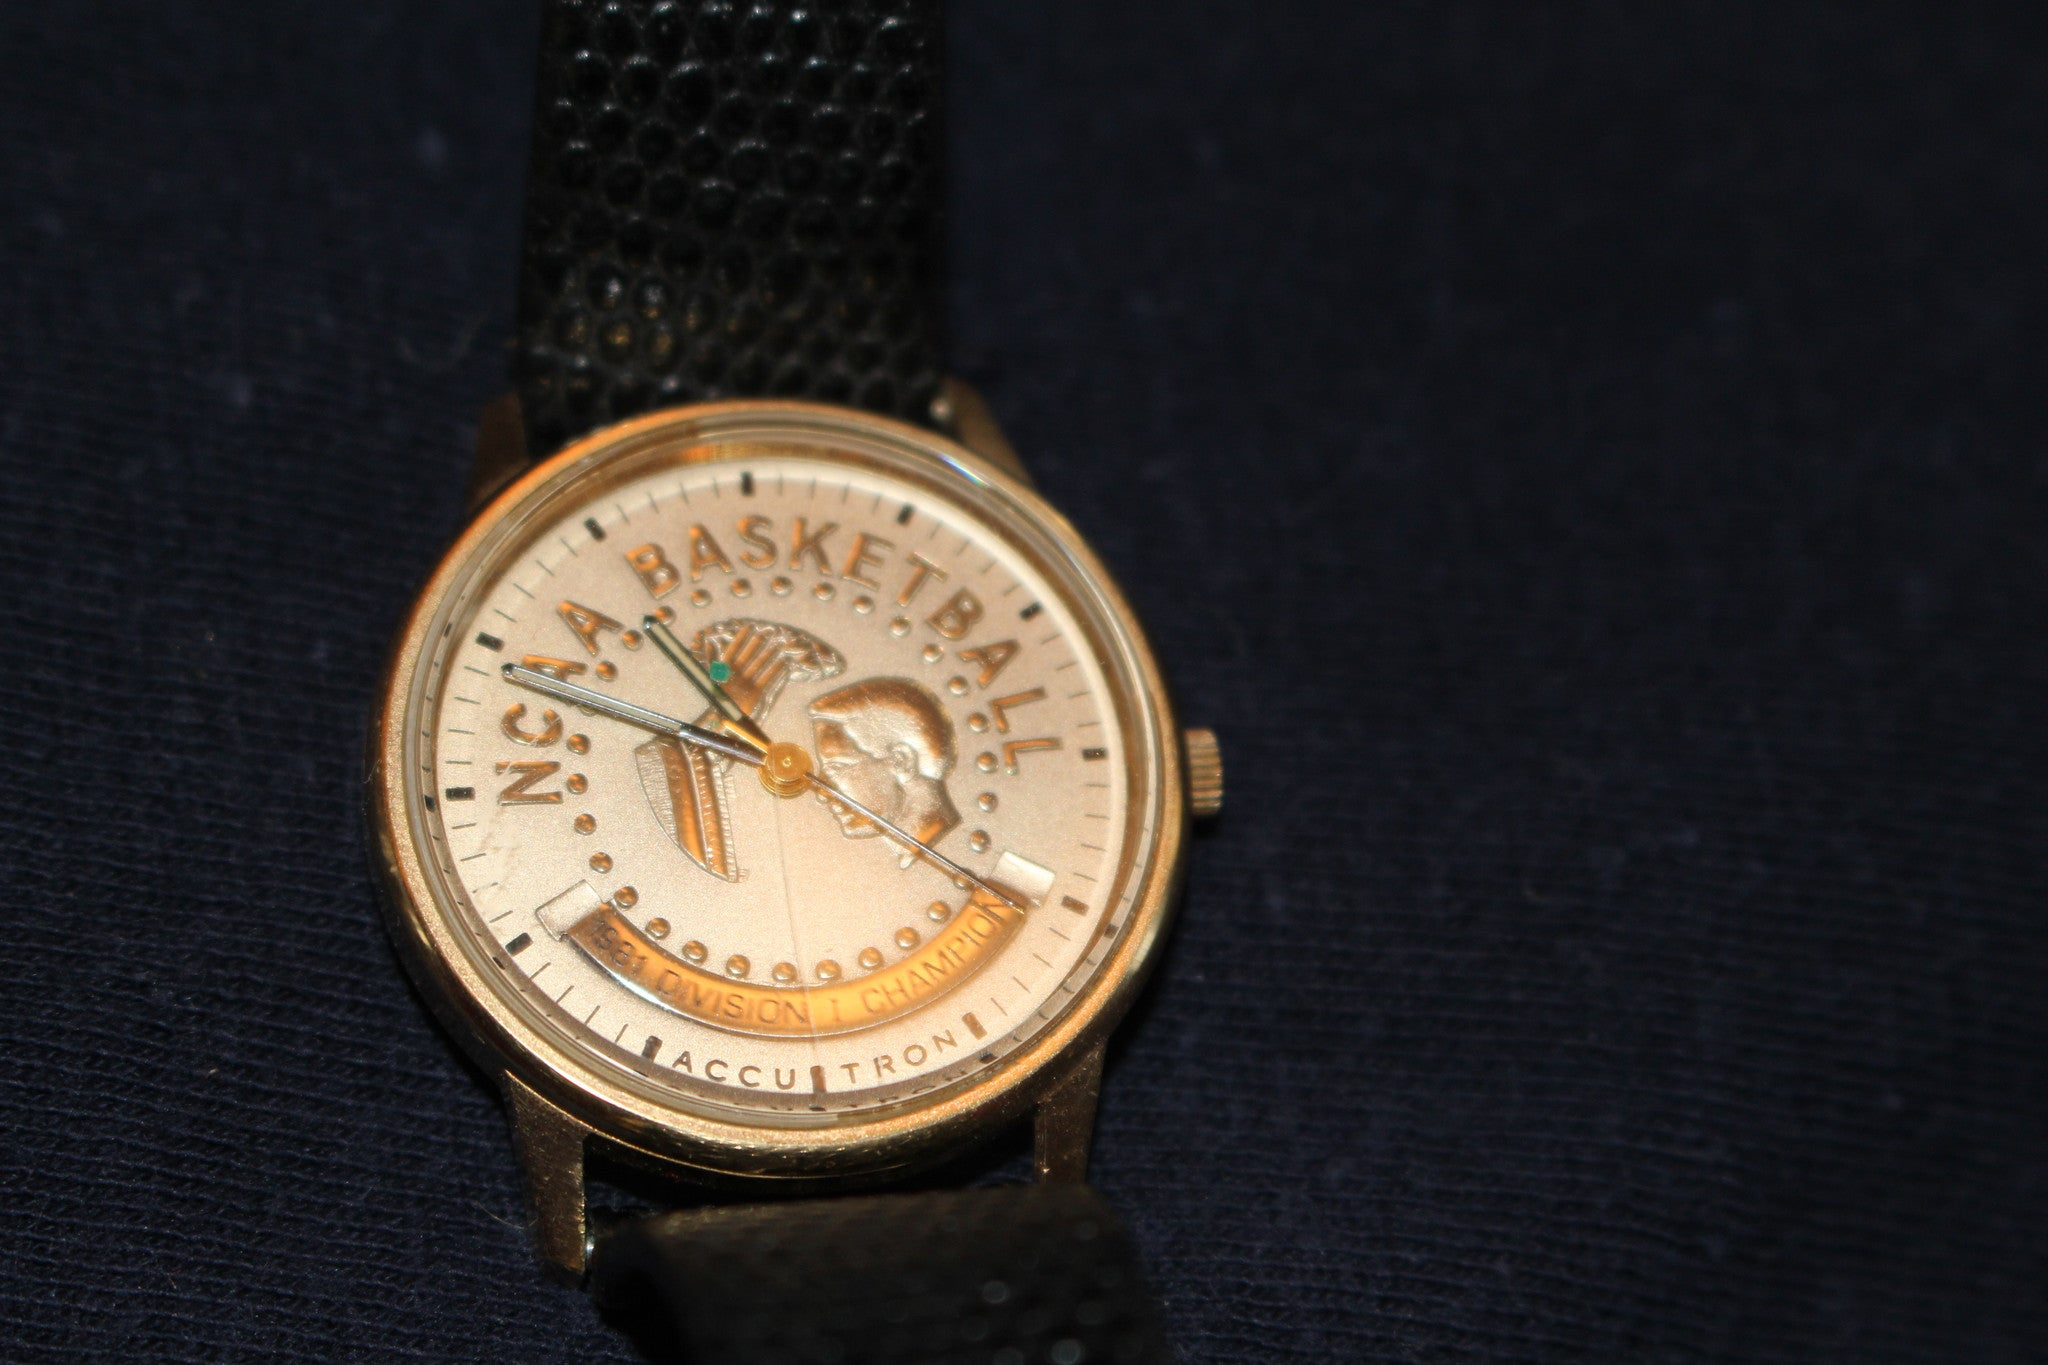 1981 Indiana University NCAA Championship Players Watch - Vintage Indy Sports